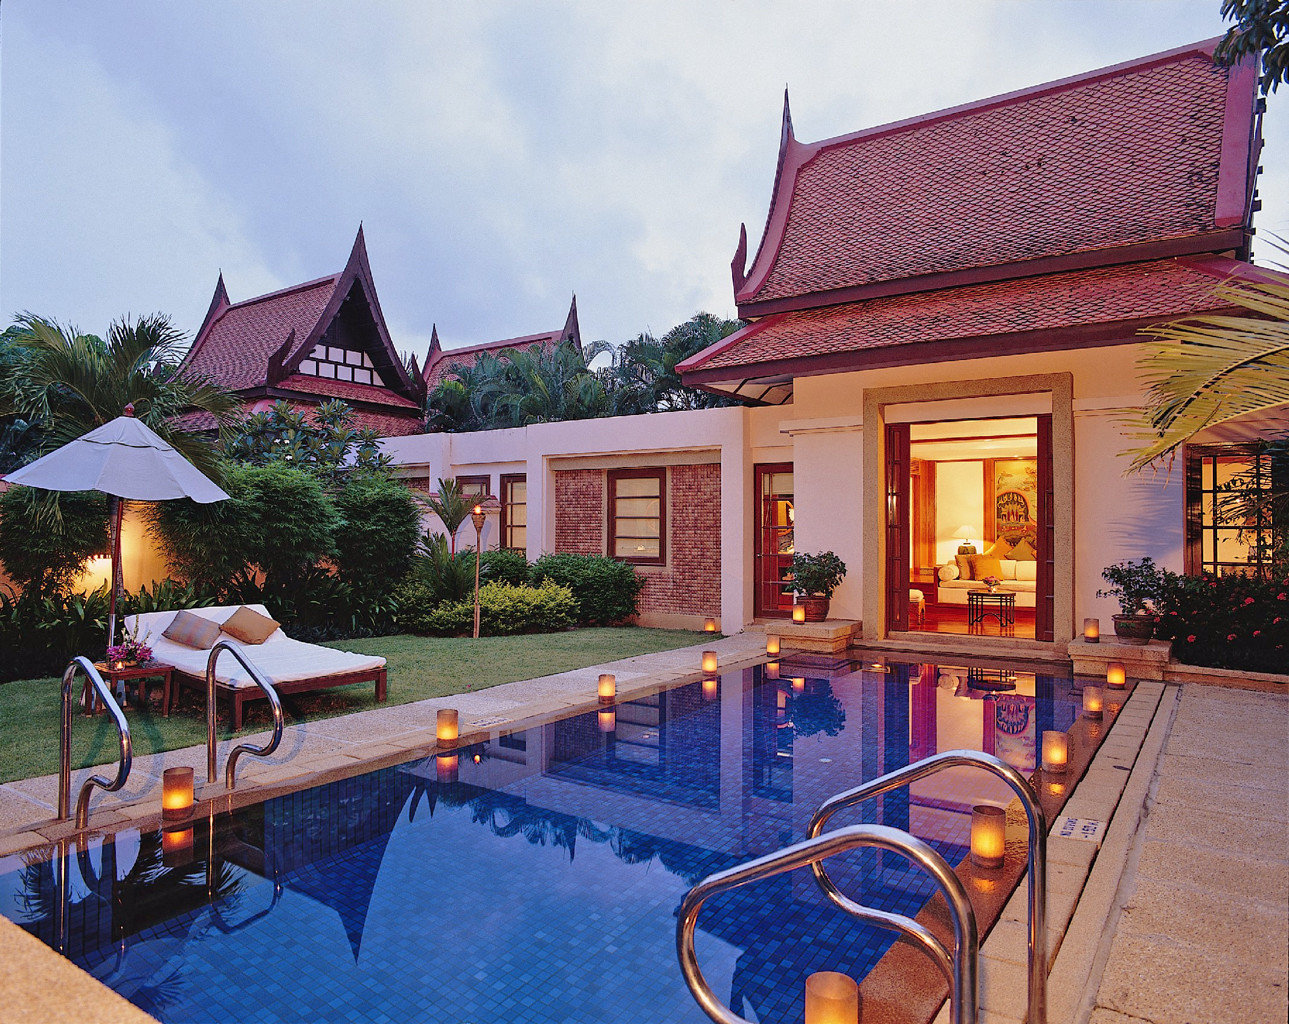 Beach Hotels Phuket Thailand outdoor sky property leisure swimming pool building estate house Resort Villa home vacation backyard cottage real estate hacienda mansion